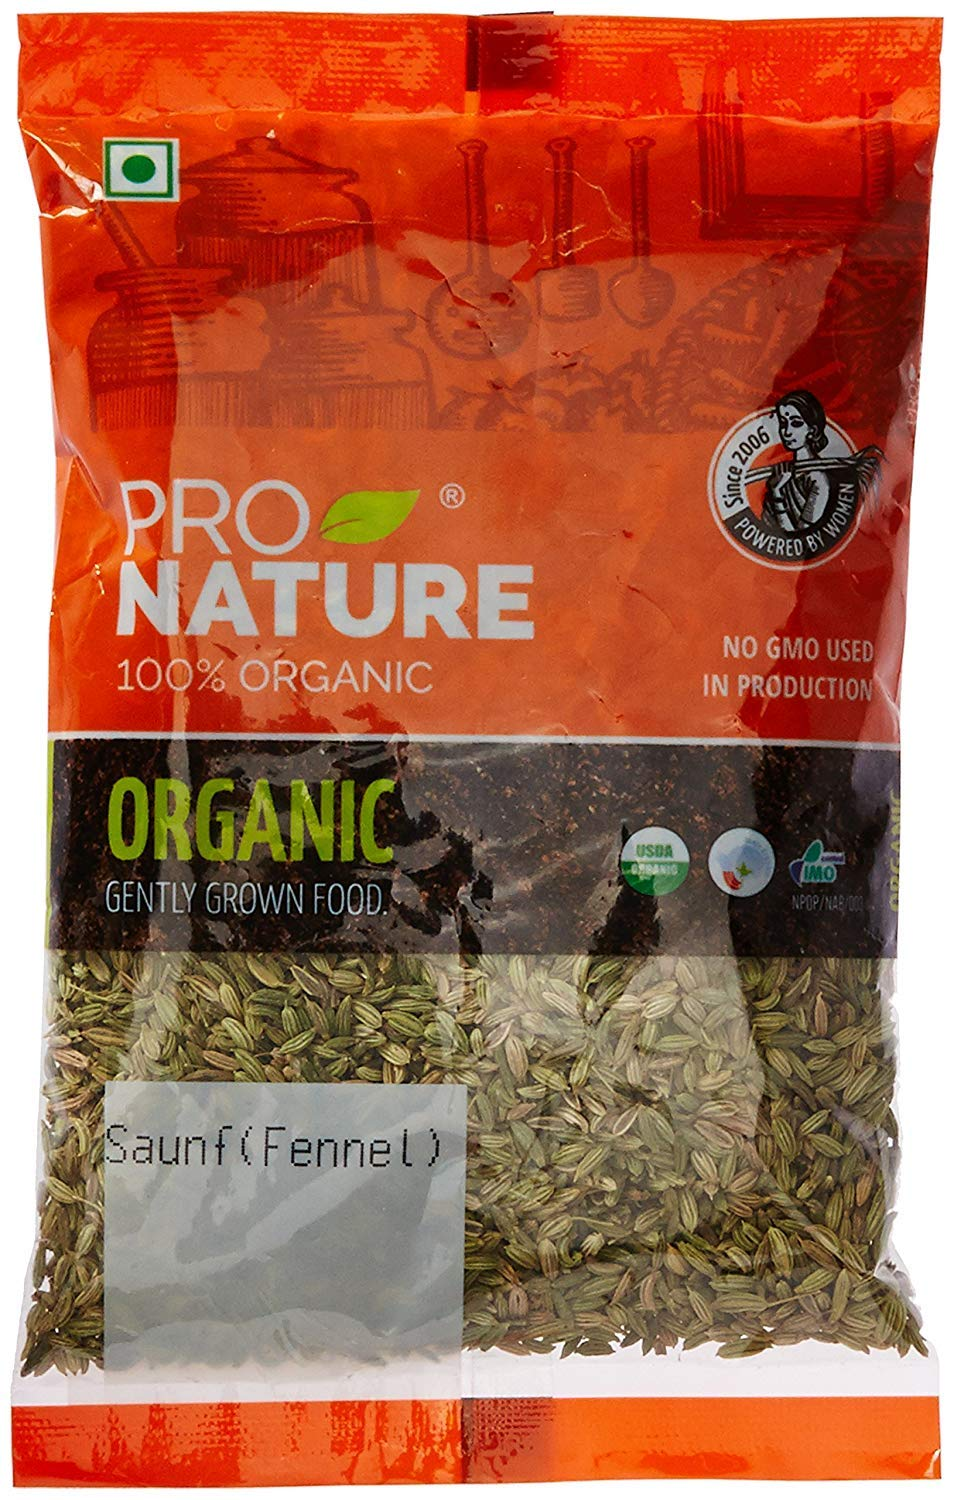 Pro Nature 100% Organic Saunf (Fennel) 100 g by Hindustan Mart (Image #1)